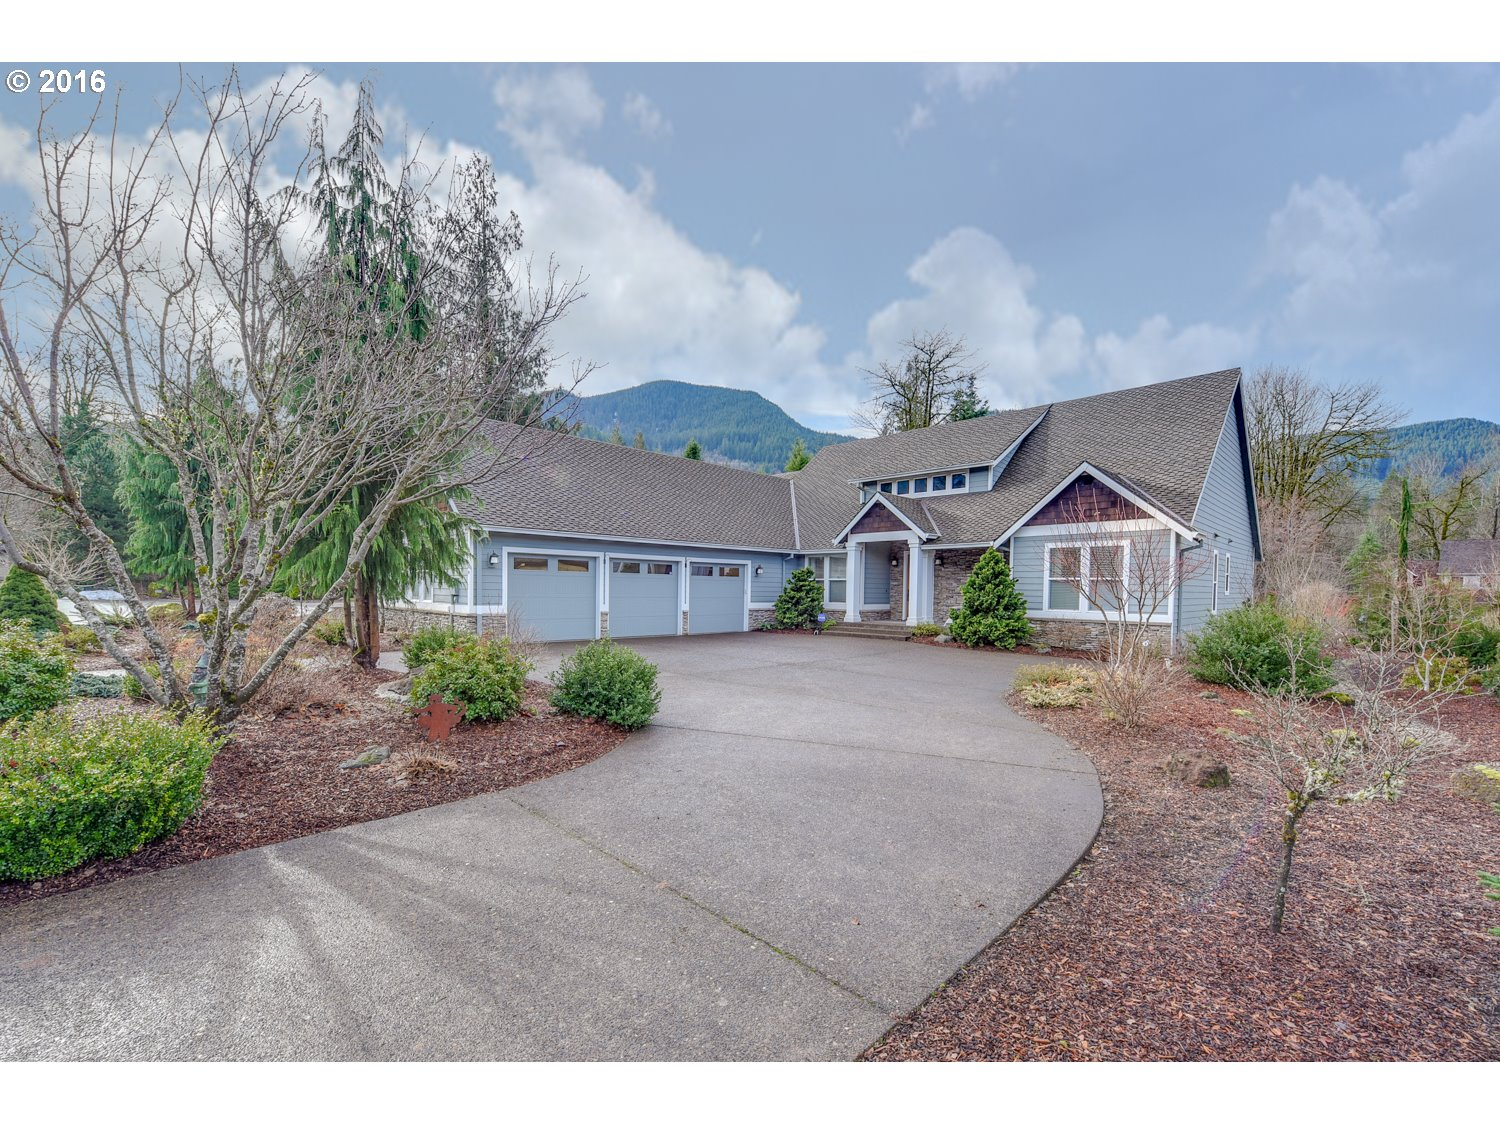 67460 E Jennie Welch Ct, Welches, OR